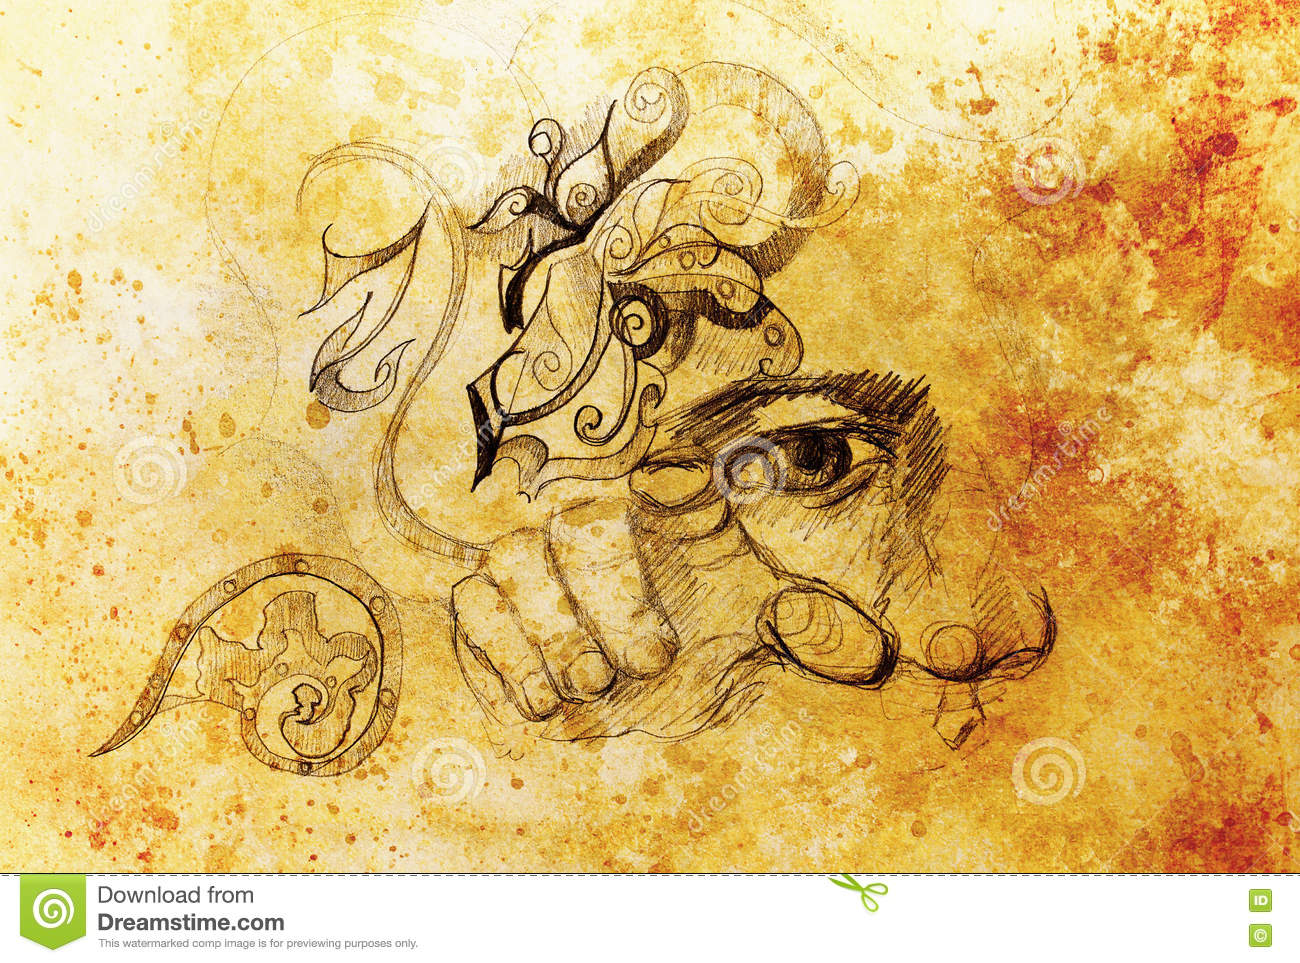 Man eye nose and hand collage pencil sketch on paper color effect